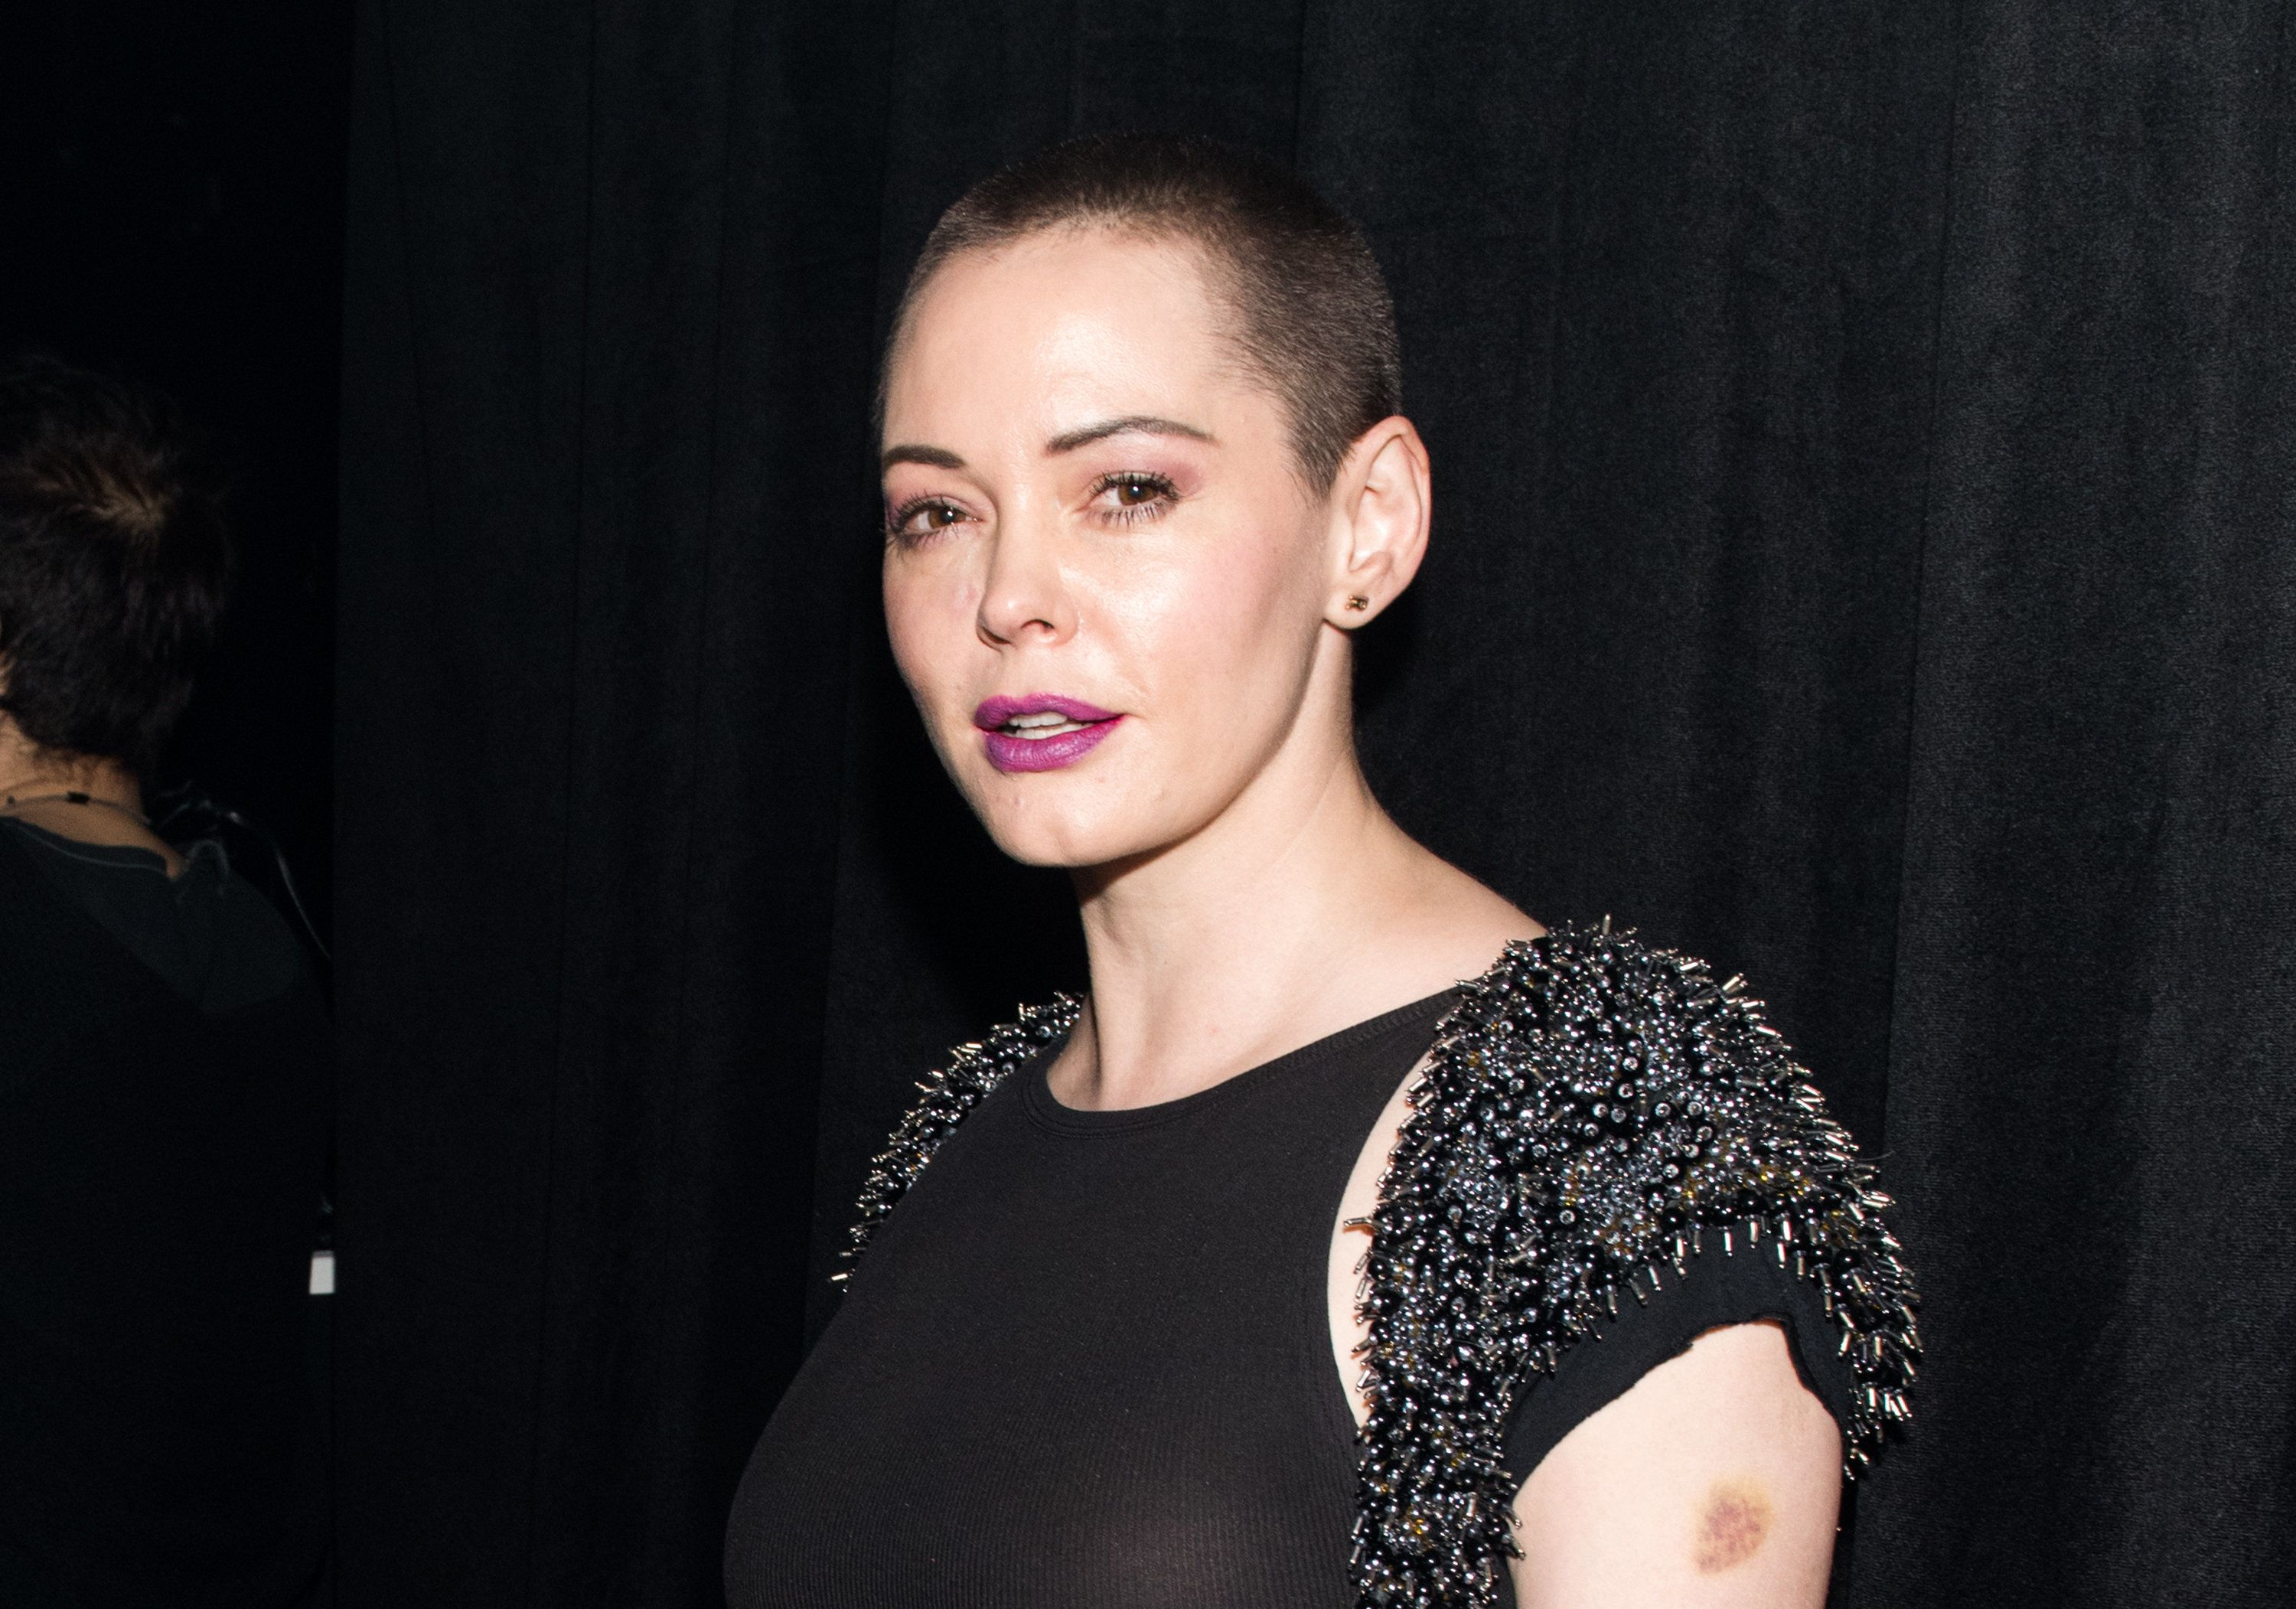 Rose McGowan, the woman who sparked the Twitter